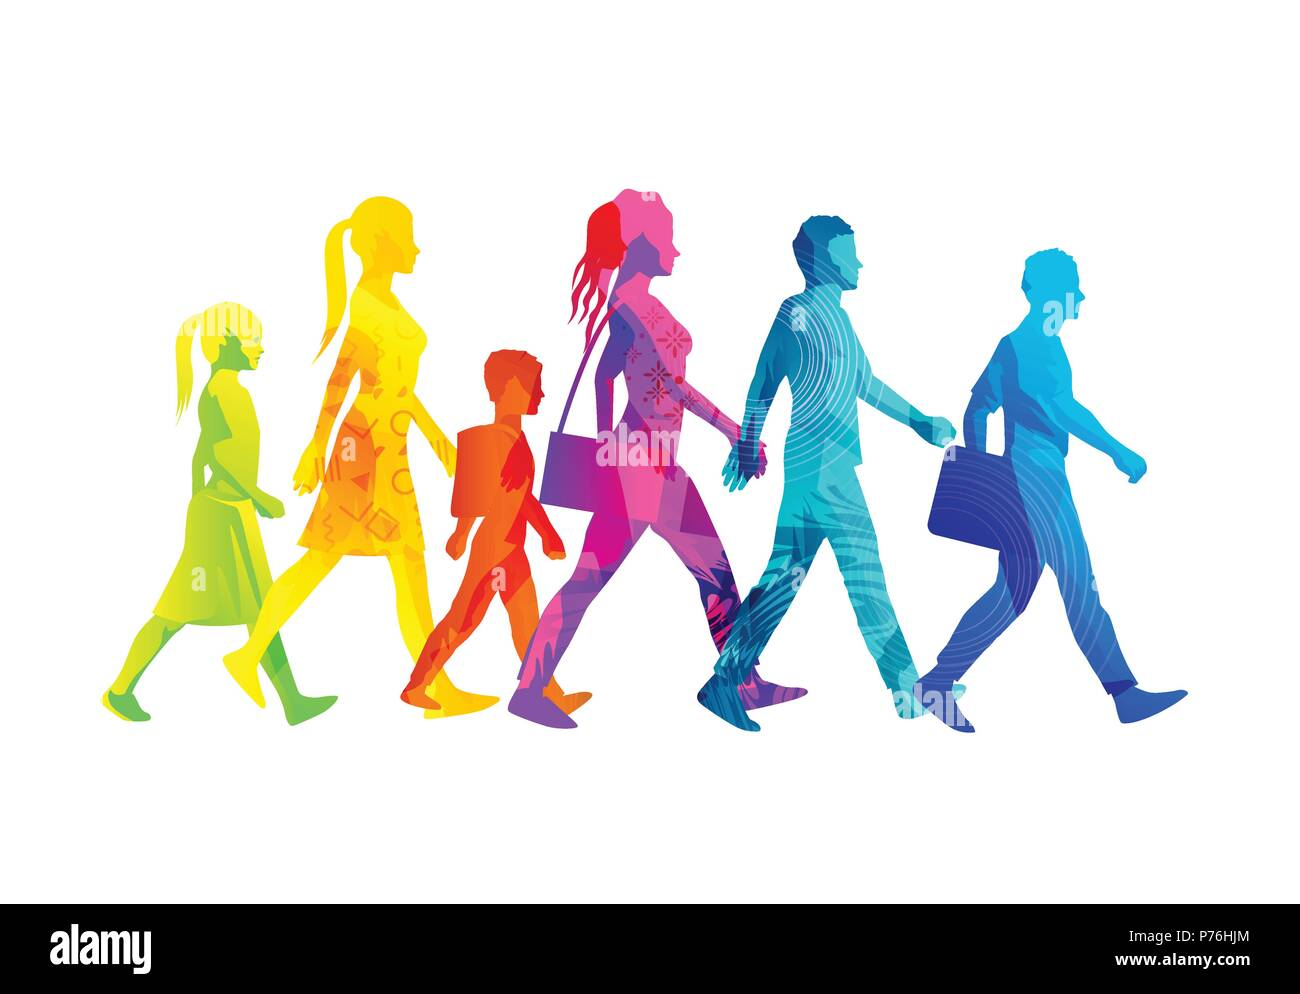 A selection of people silhouettes walking including children, women and men. Colourful texture vector illustration. - Stock Vector